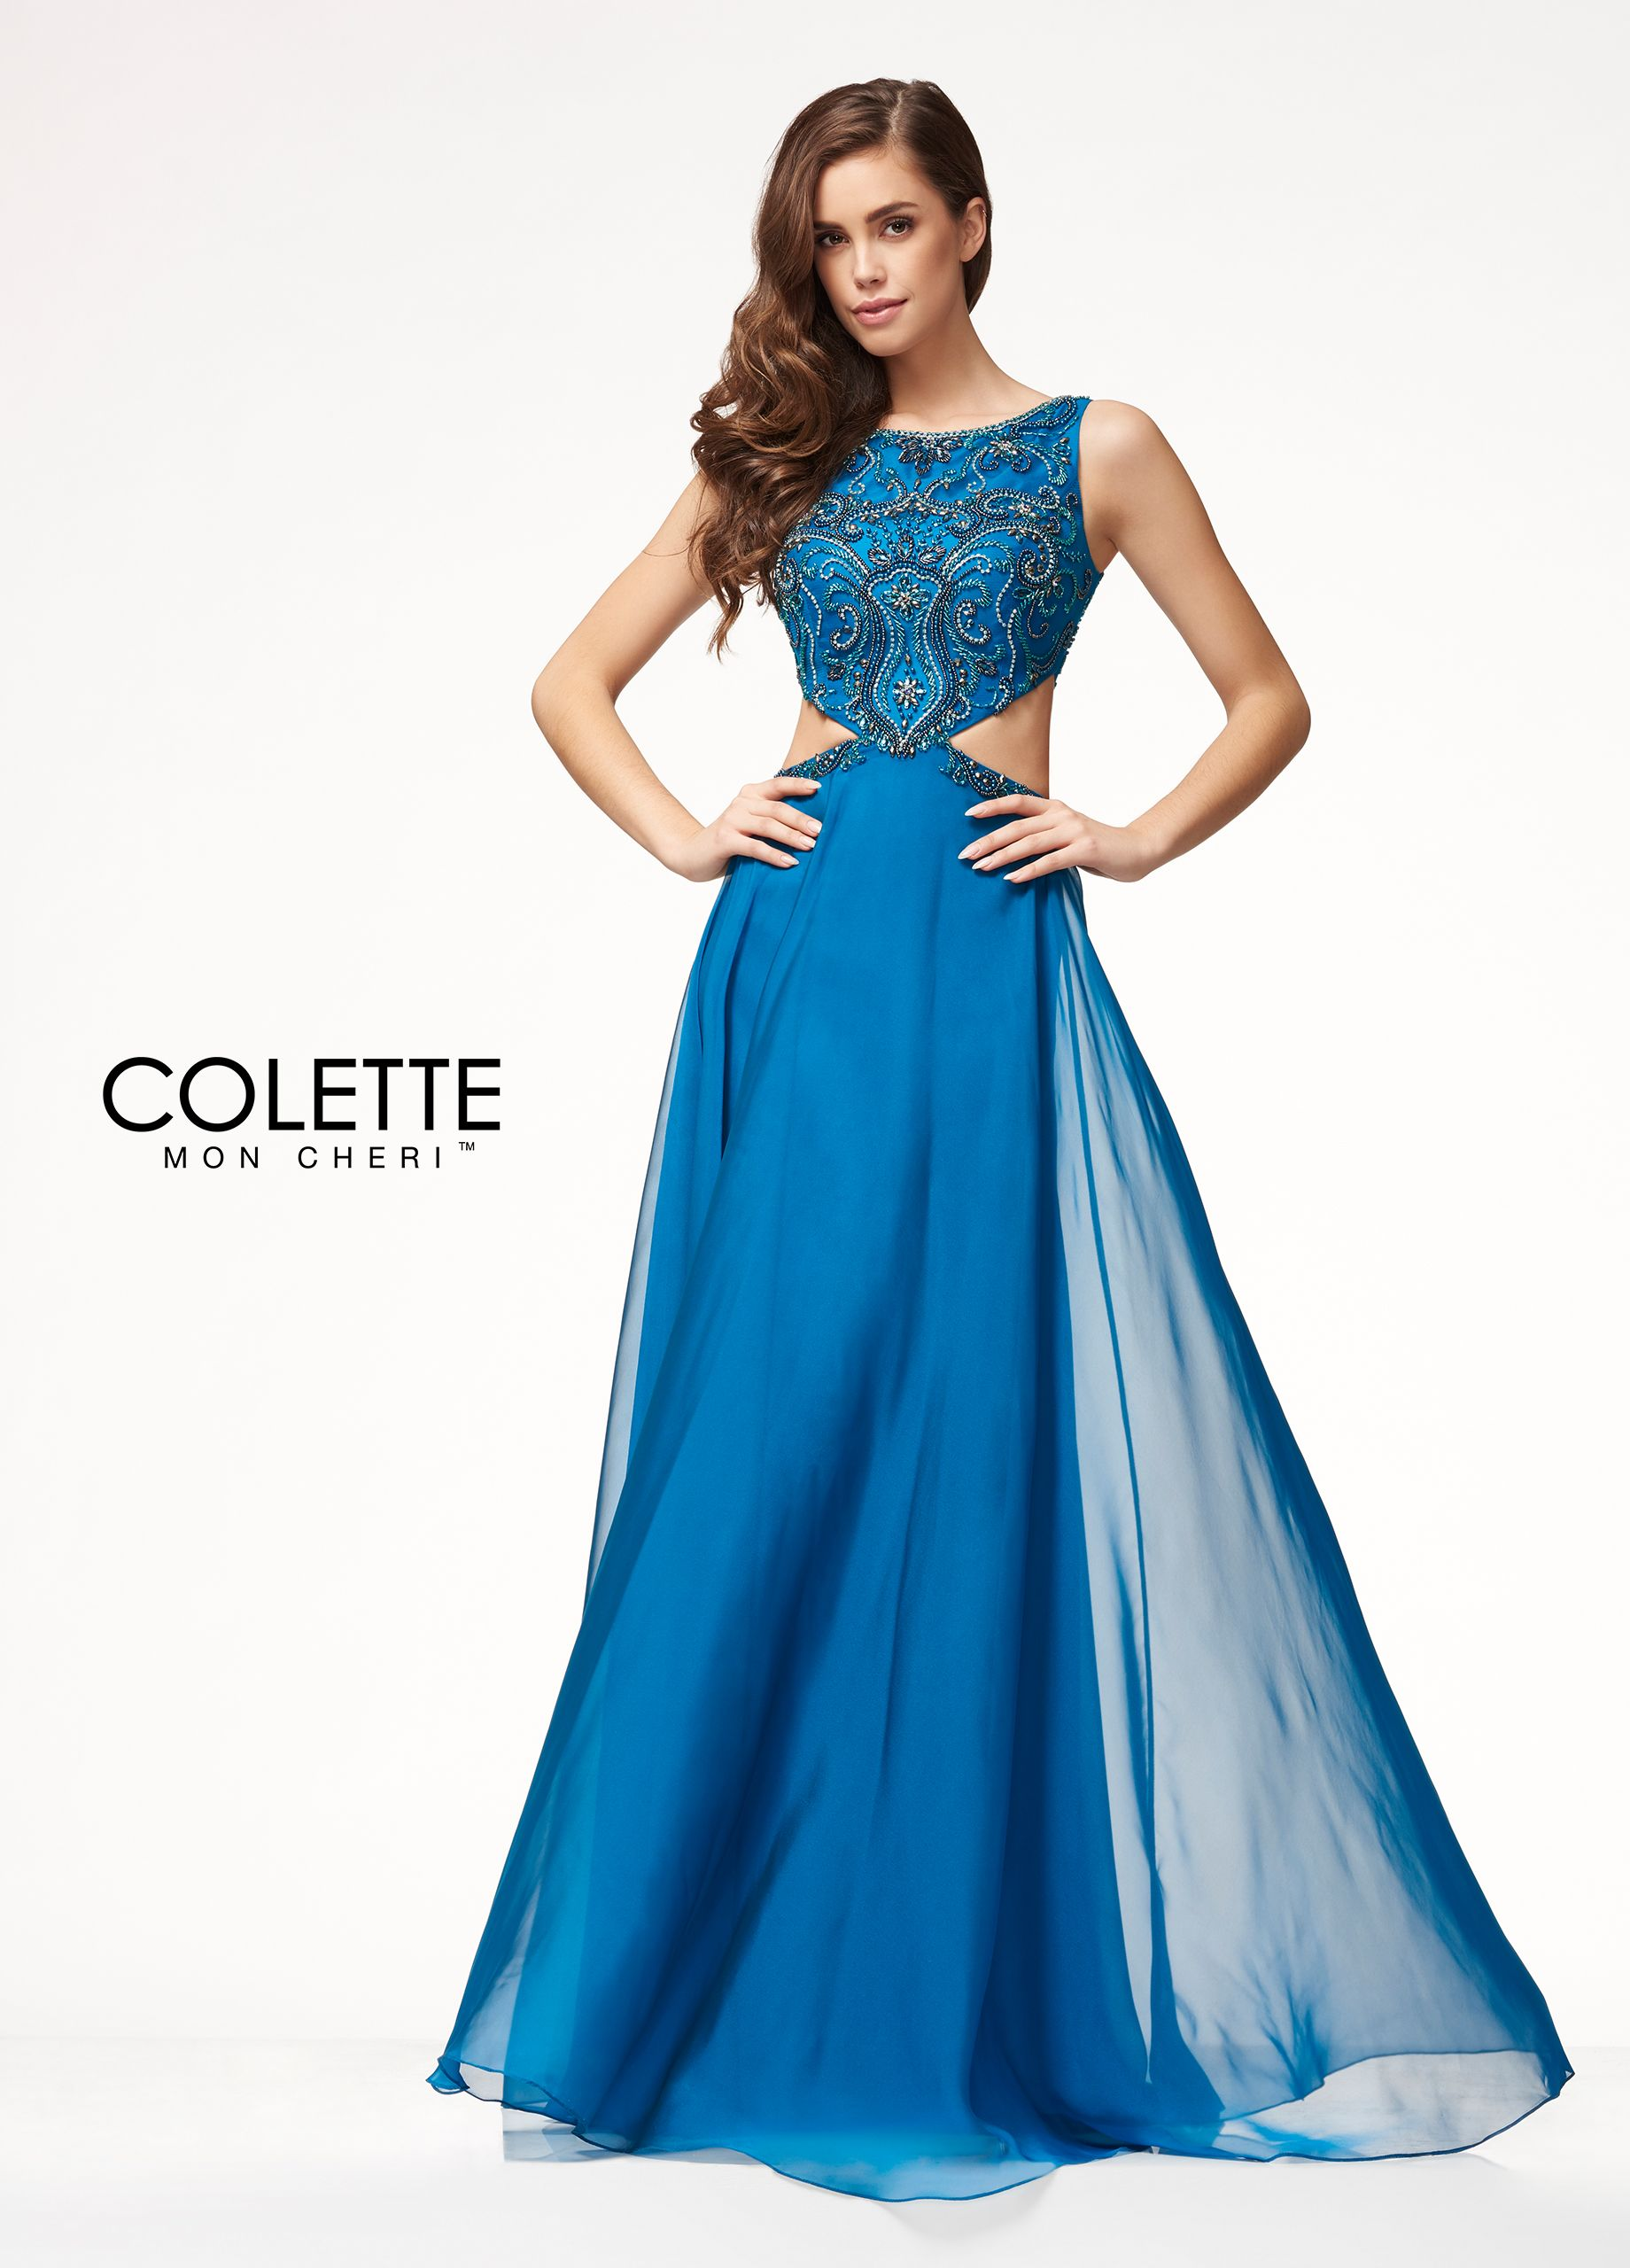 Unique Cut Out Chiffon Prom Dress - Colette for Mon Cheri - CL18277 ...